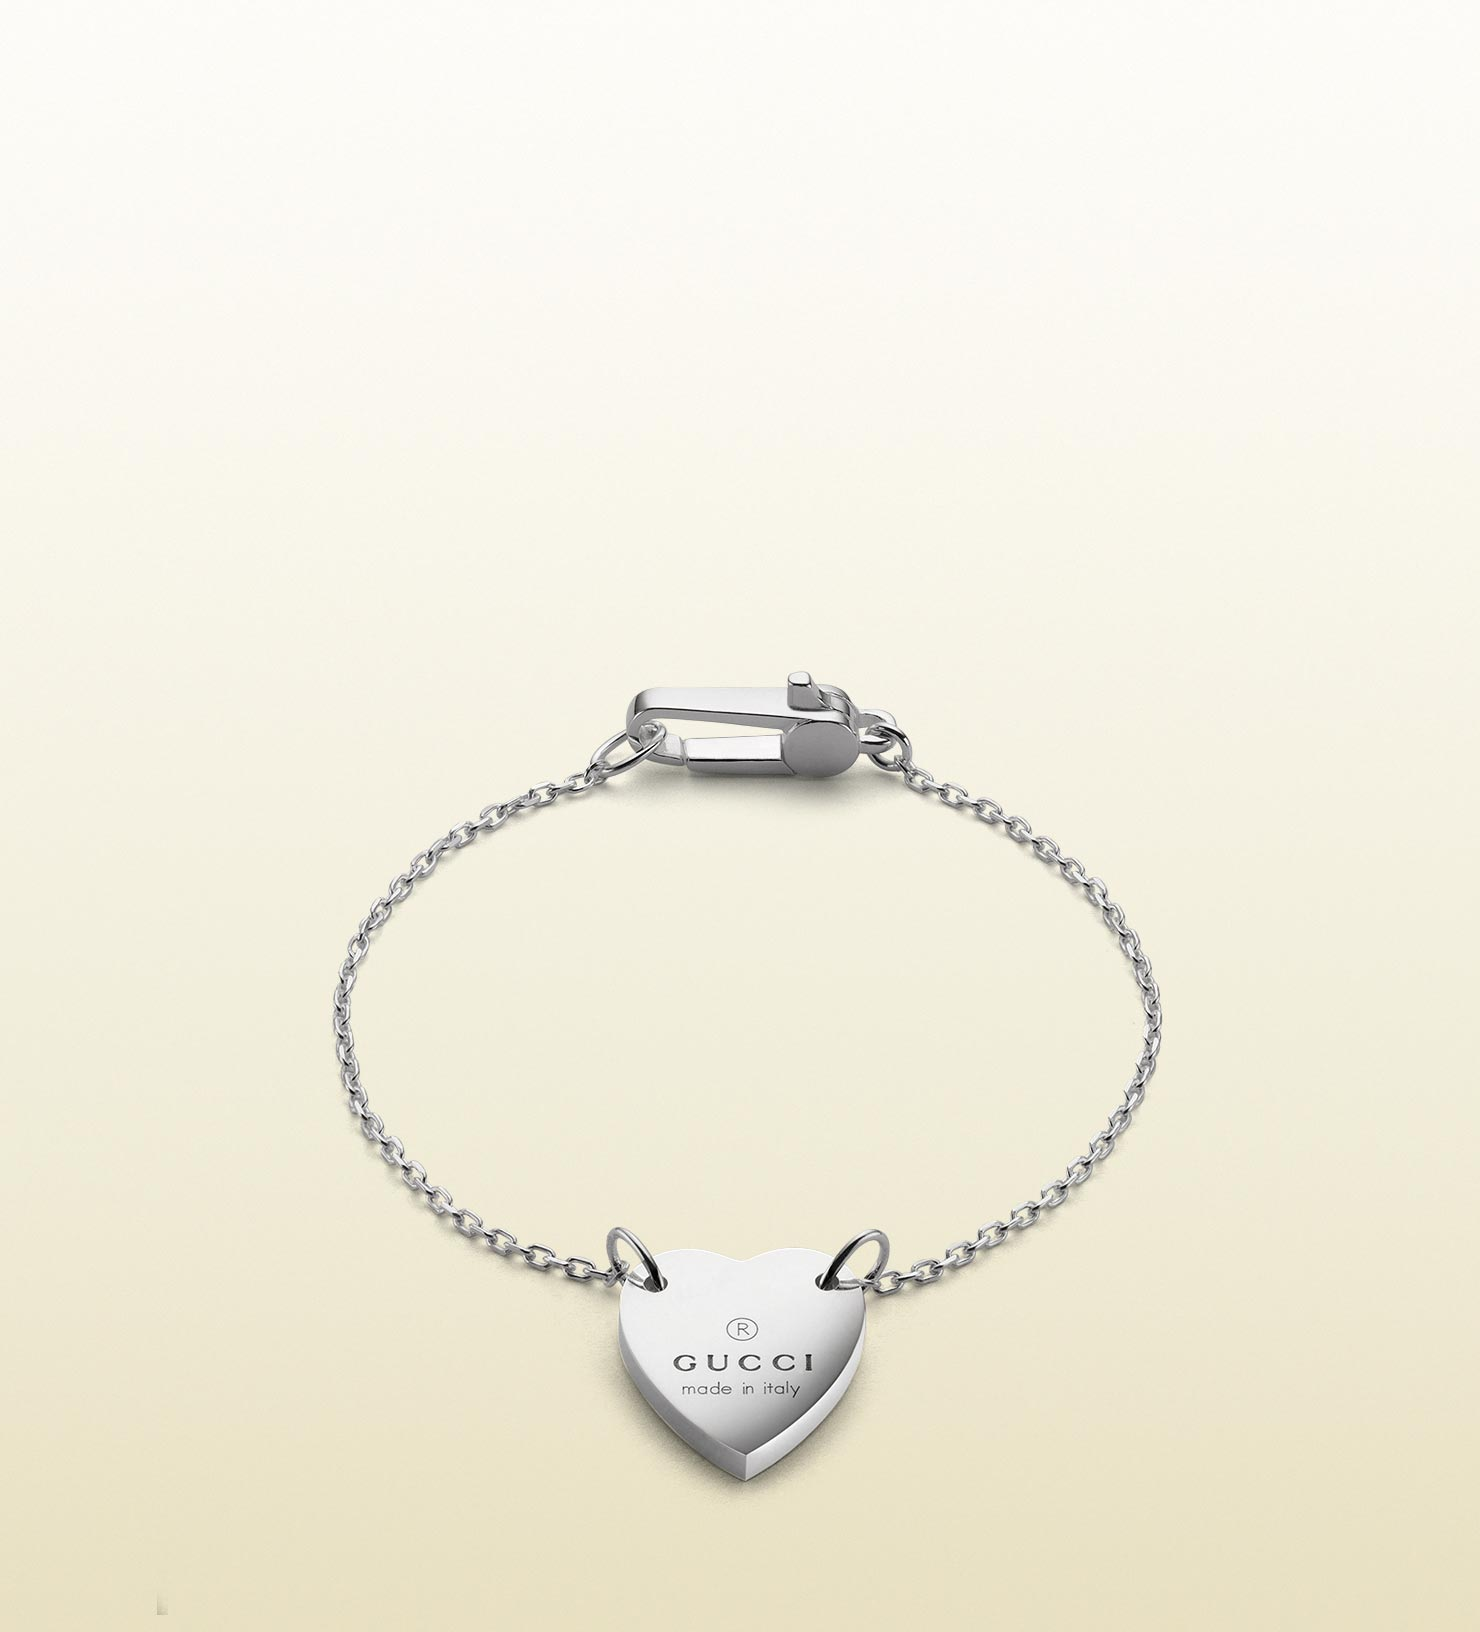 Gucci Bracelet With Trademark Engraved Heart In Metallic